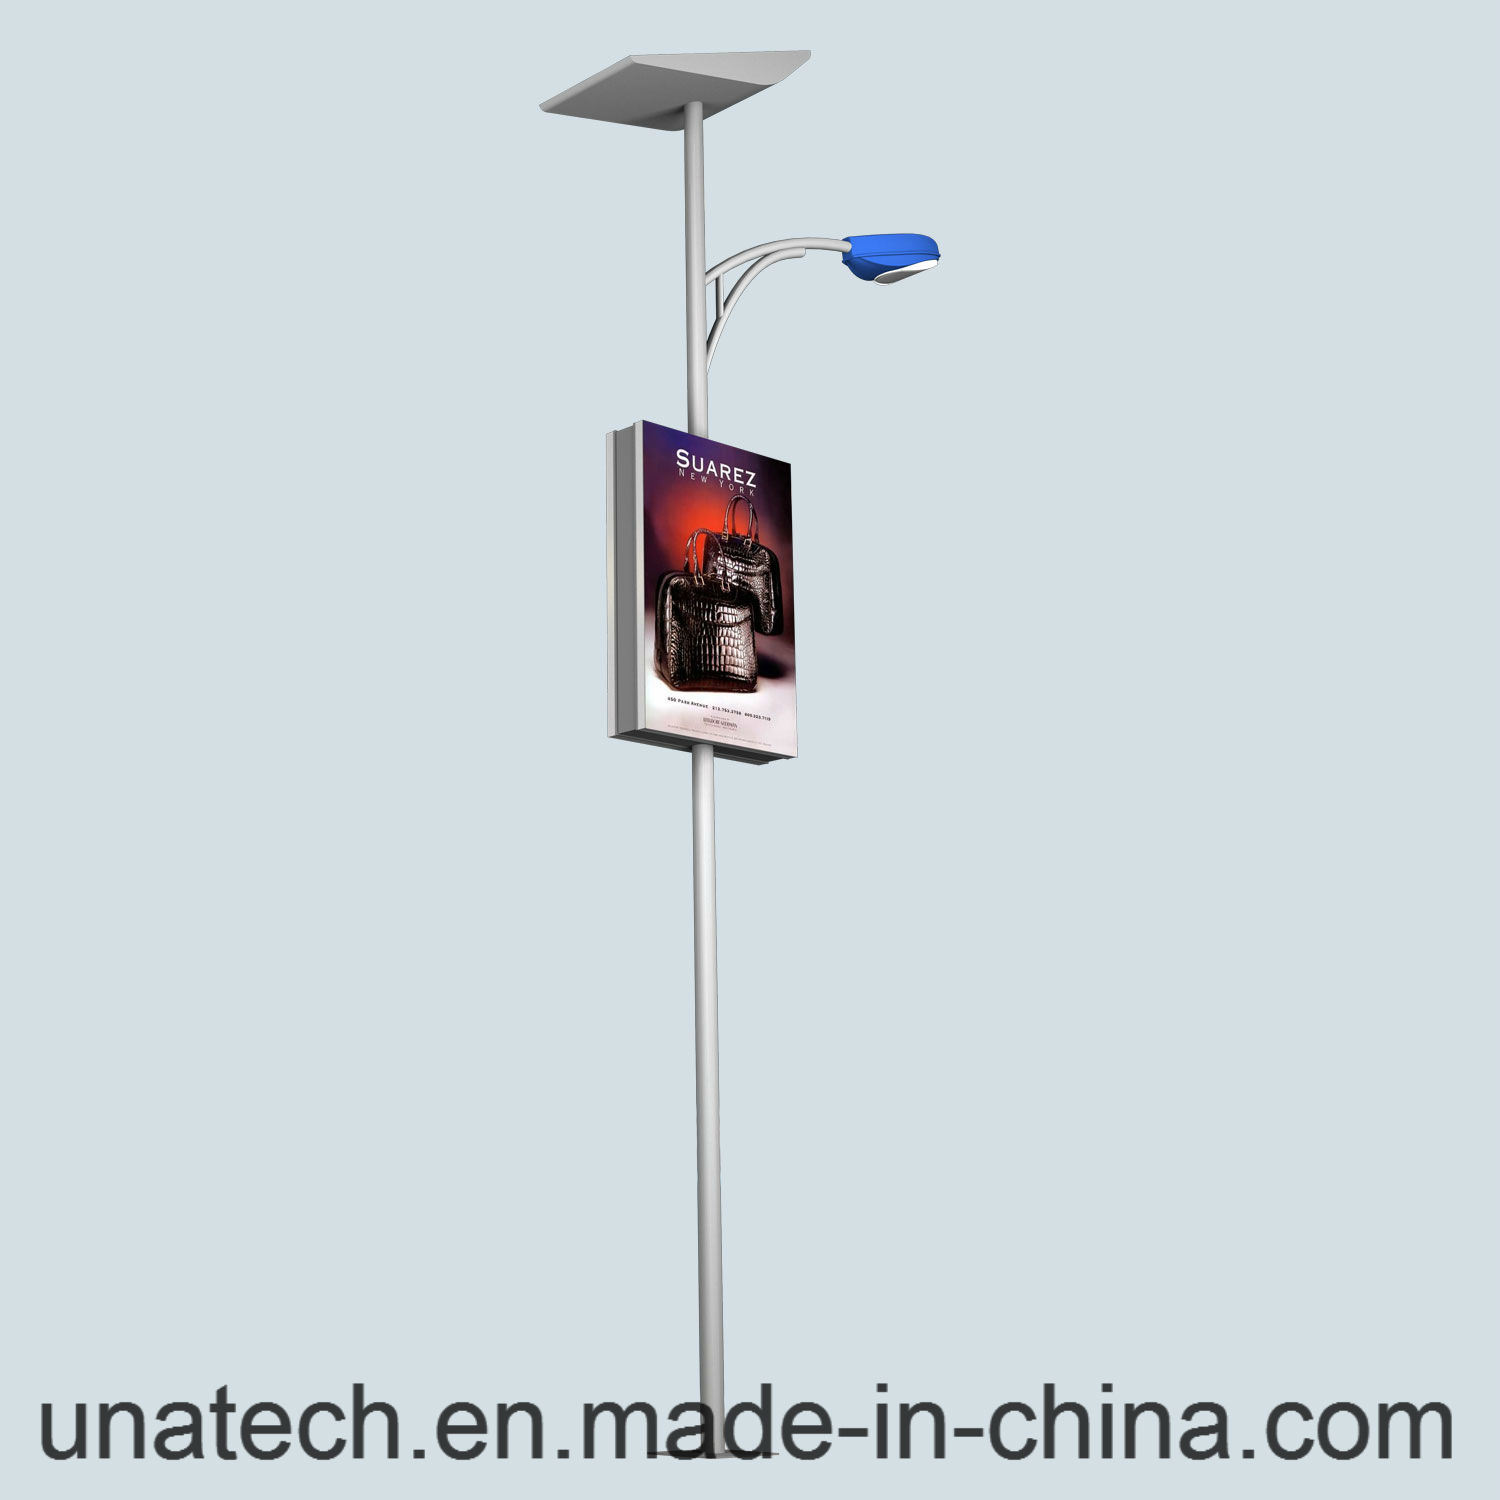 Solar Outdoor Street Road Lamp Pole Ads LED Banner Flex Promotion Light Box